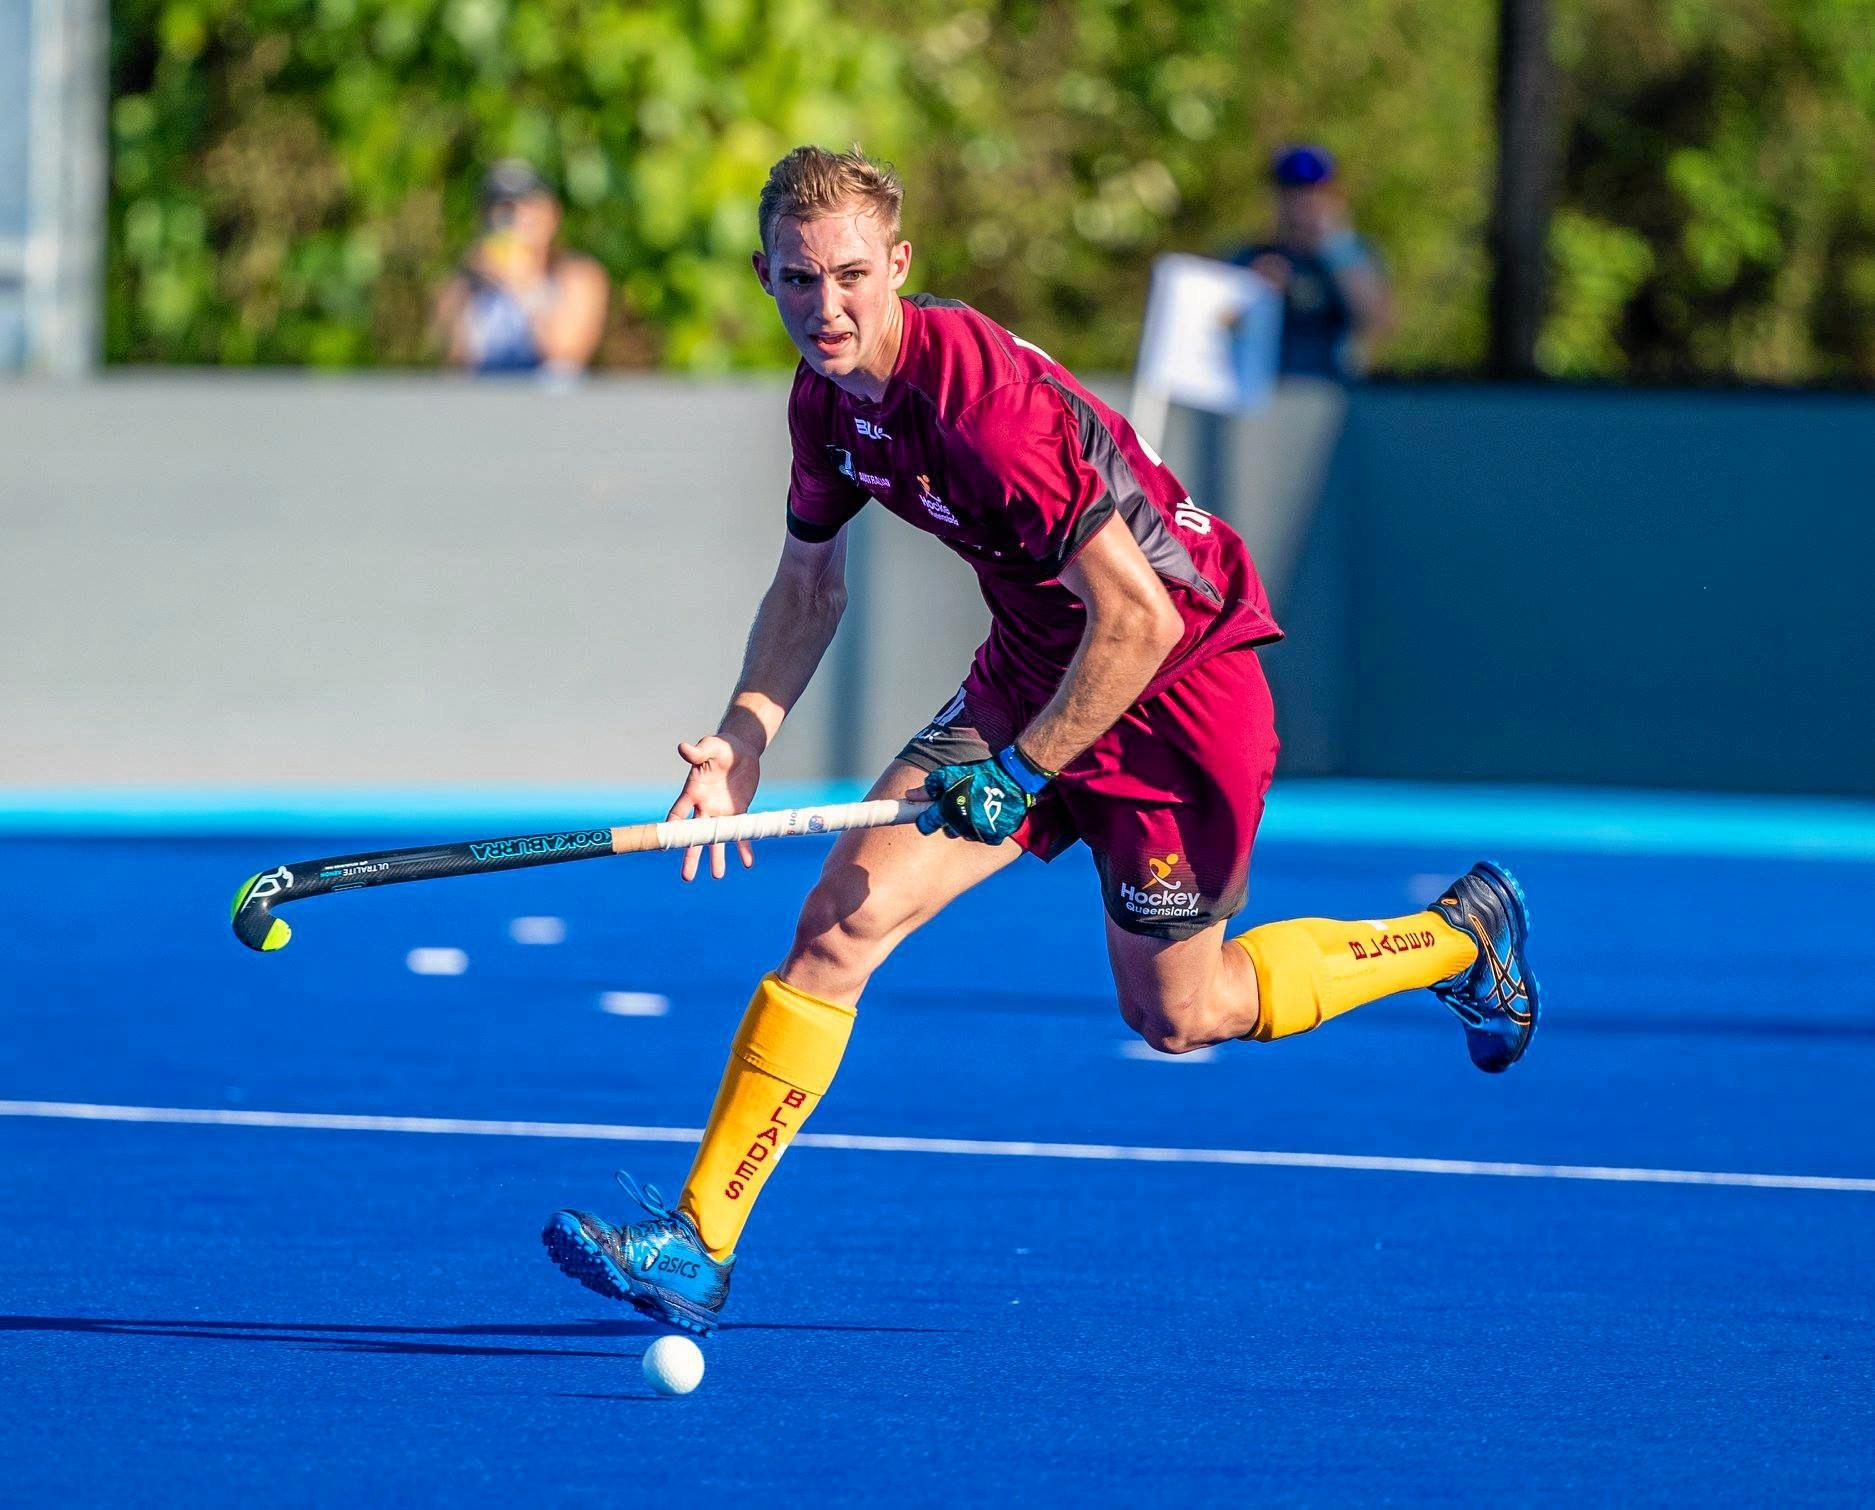 Jacob Anderson with the Queensland Blades at the 2018 Australian Hockey League semi final October 27 verse Tasmania